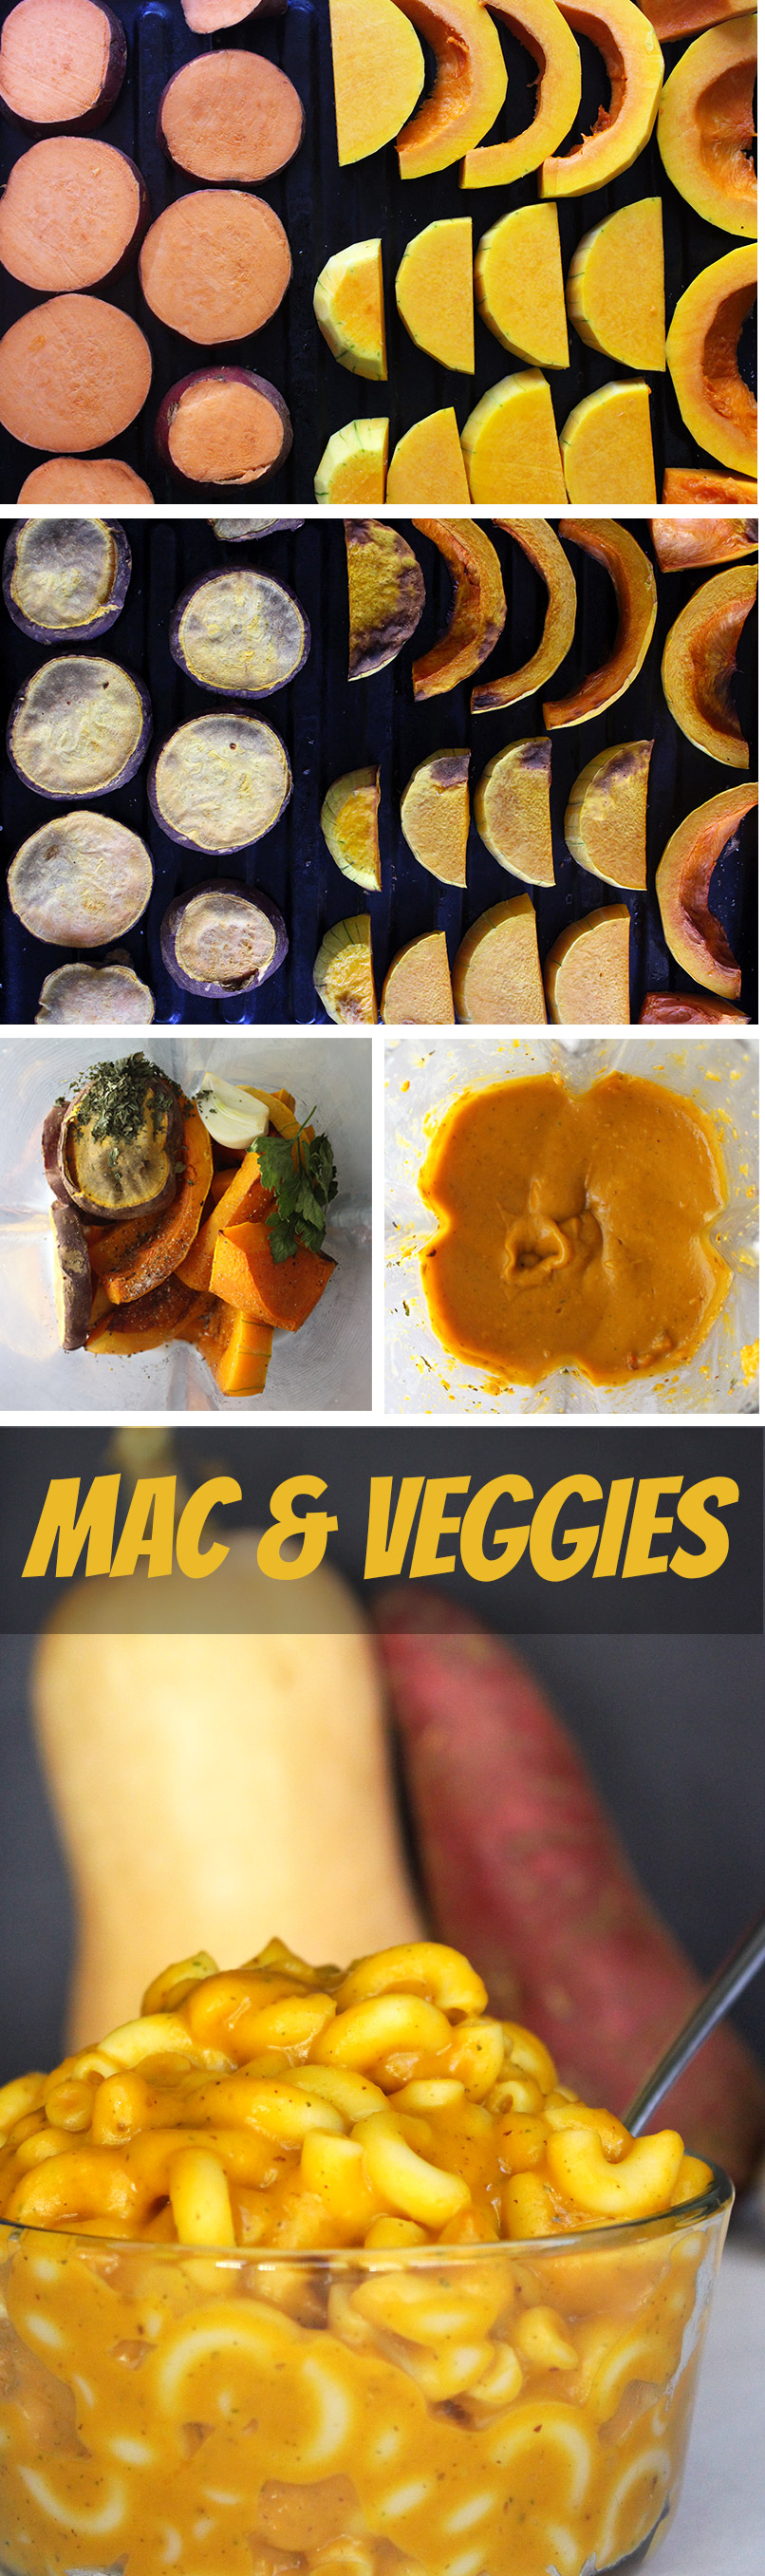 Mac & Veggies